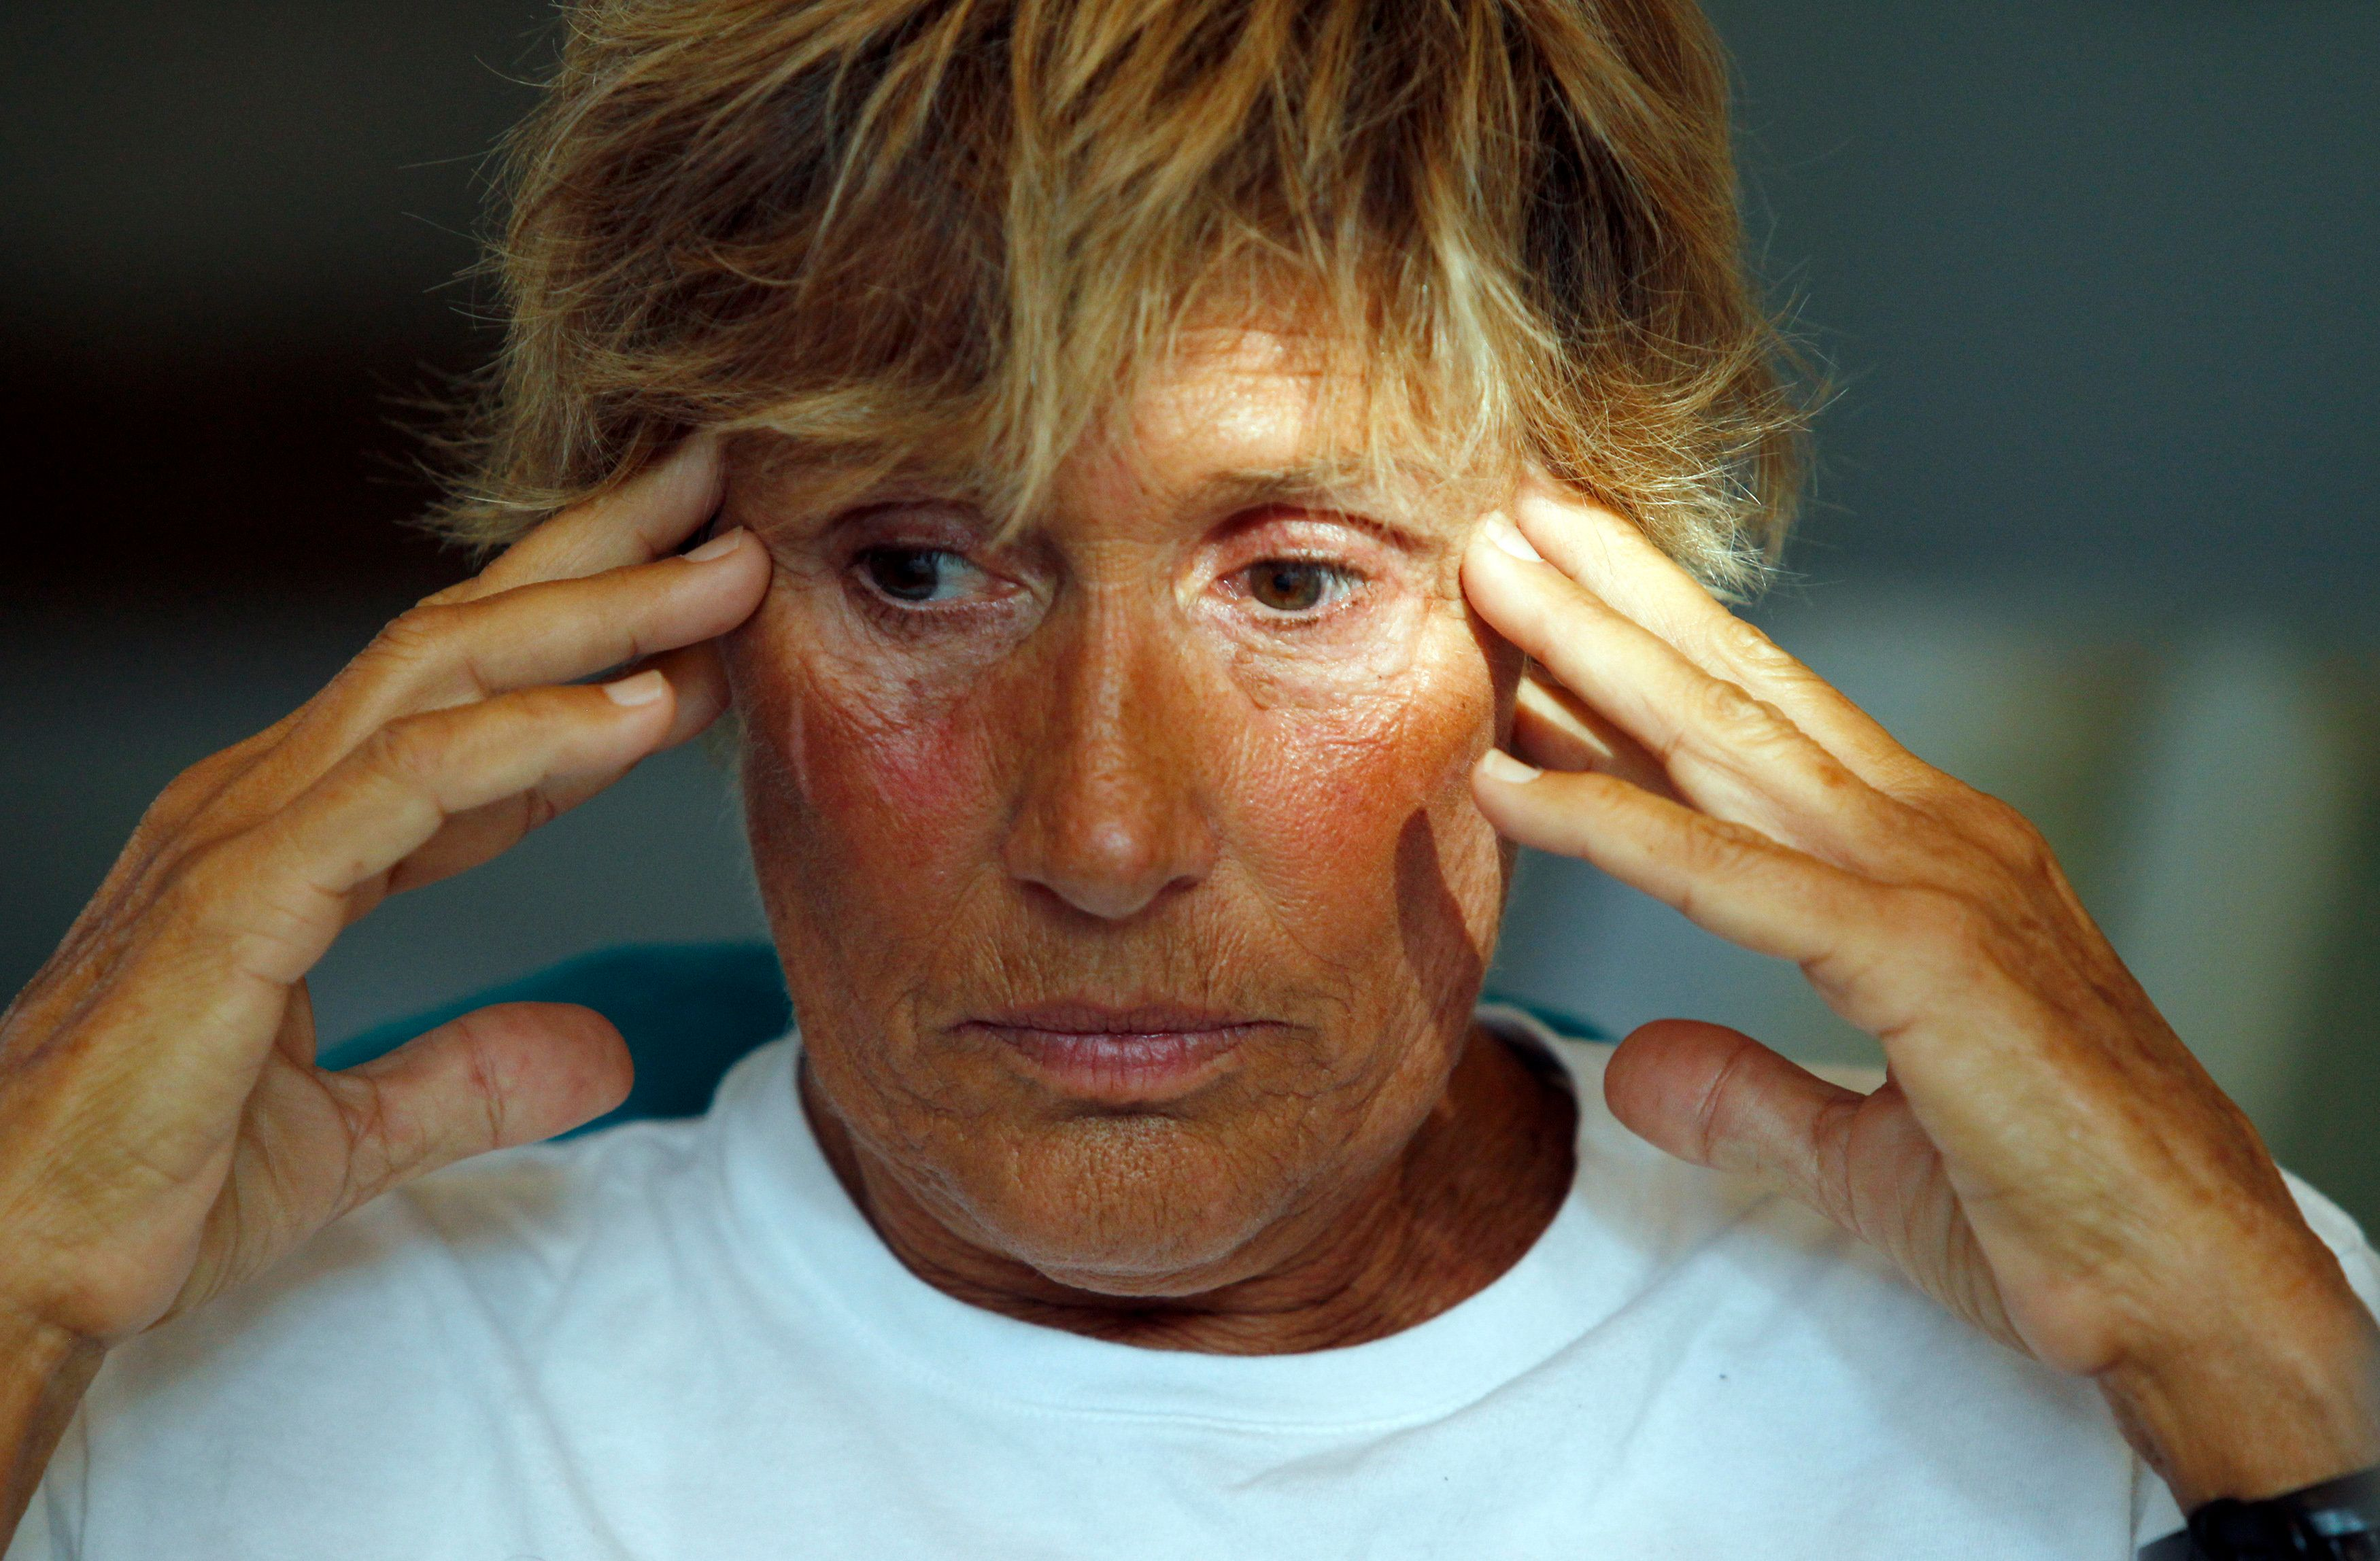 U.S. long-distance swimmer Diana Nyad, meets with a group of fellow endurance swimmers to answer skeptics about her record-breaking crossing of the Florida Straits last week, on a conference call in Huntington Beach, California September 10, 2013. Nyad vigorously defended on Tuesday her record-breaking, 110-mile (177-km) swim from Cuba to southern Florida after skeptics raised questions about the grueling trek. A triumphant Nyad, 64, staggered ashore in Key West, Florida, on Sept. 2, after having swum about 53 hours, to become the first person to complete the treacherous crossing without a shark cage. Nyad's swim was her fifth attempt and only successful one. The highly publicized crossing sparked a social media debate about whether her journey meets the requirements to break the world record. REUTERS/Alex Gallardo  (UNITED STATES - Tags: SPORT SWIMMING TPX IMAGES OF THE DAY)